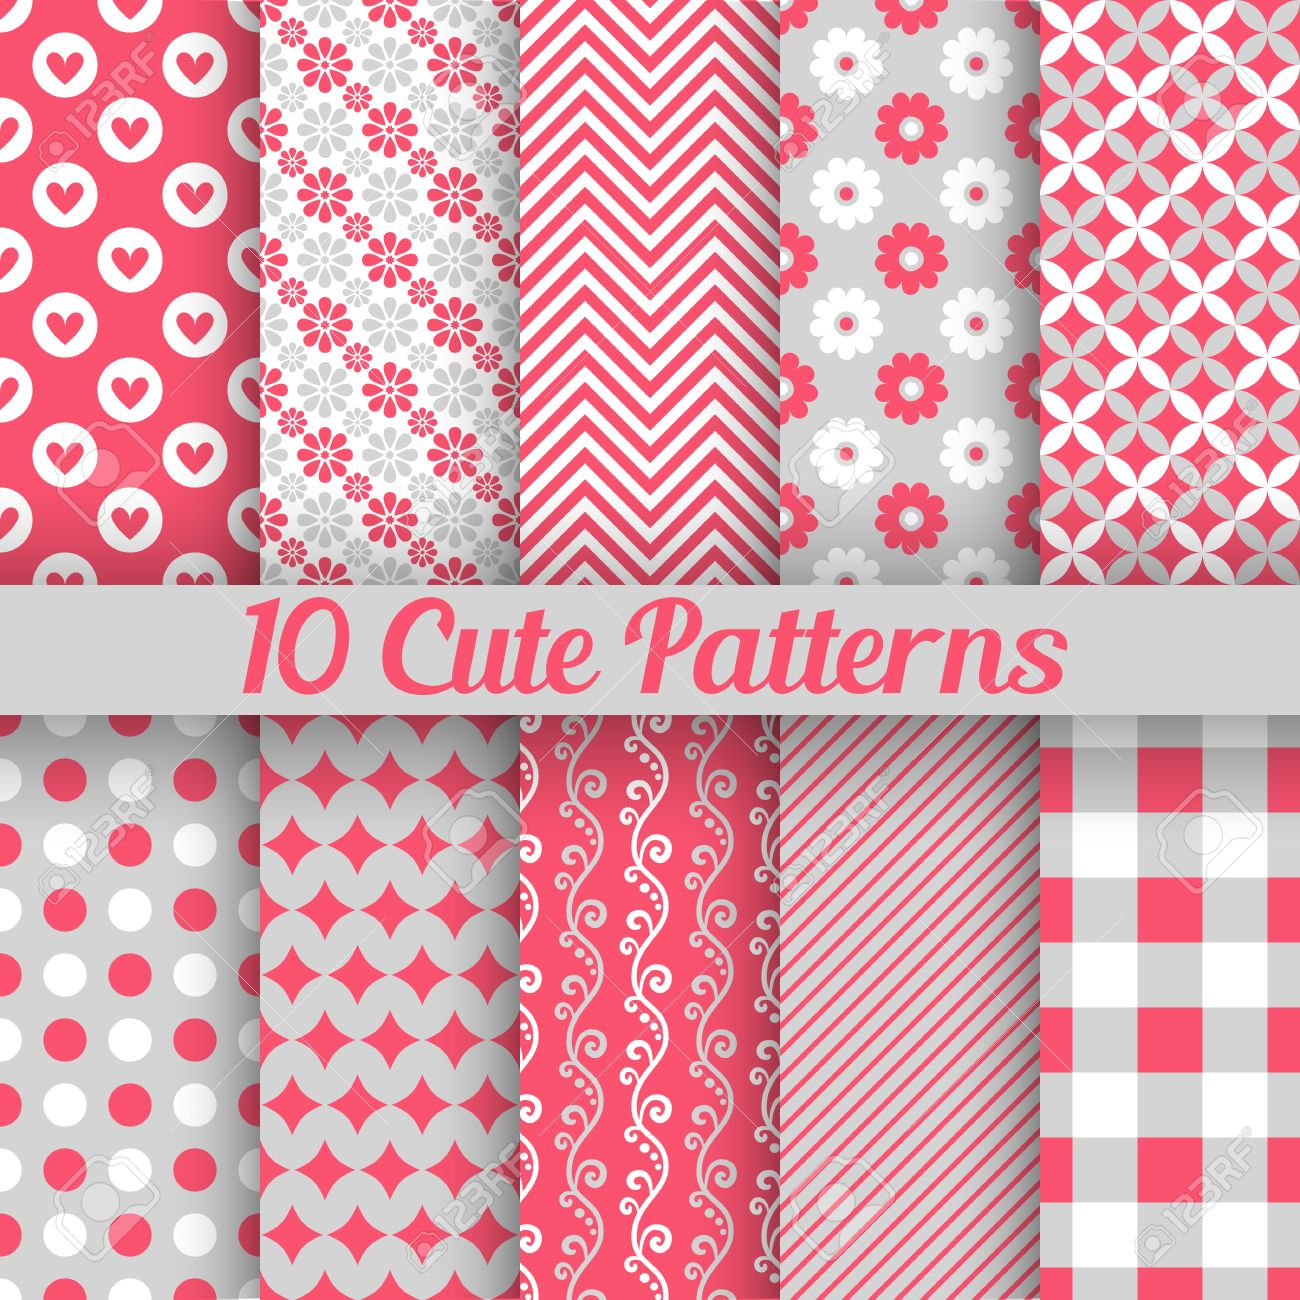 10 Cute Different Seamless Patterns Vector Illustration For Beauty Design Pink White And